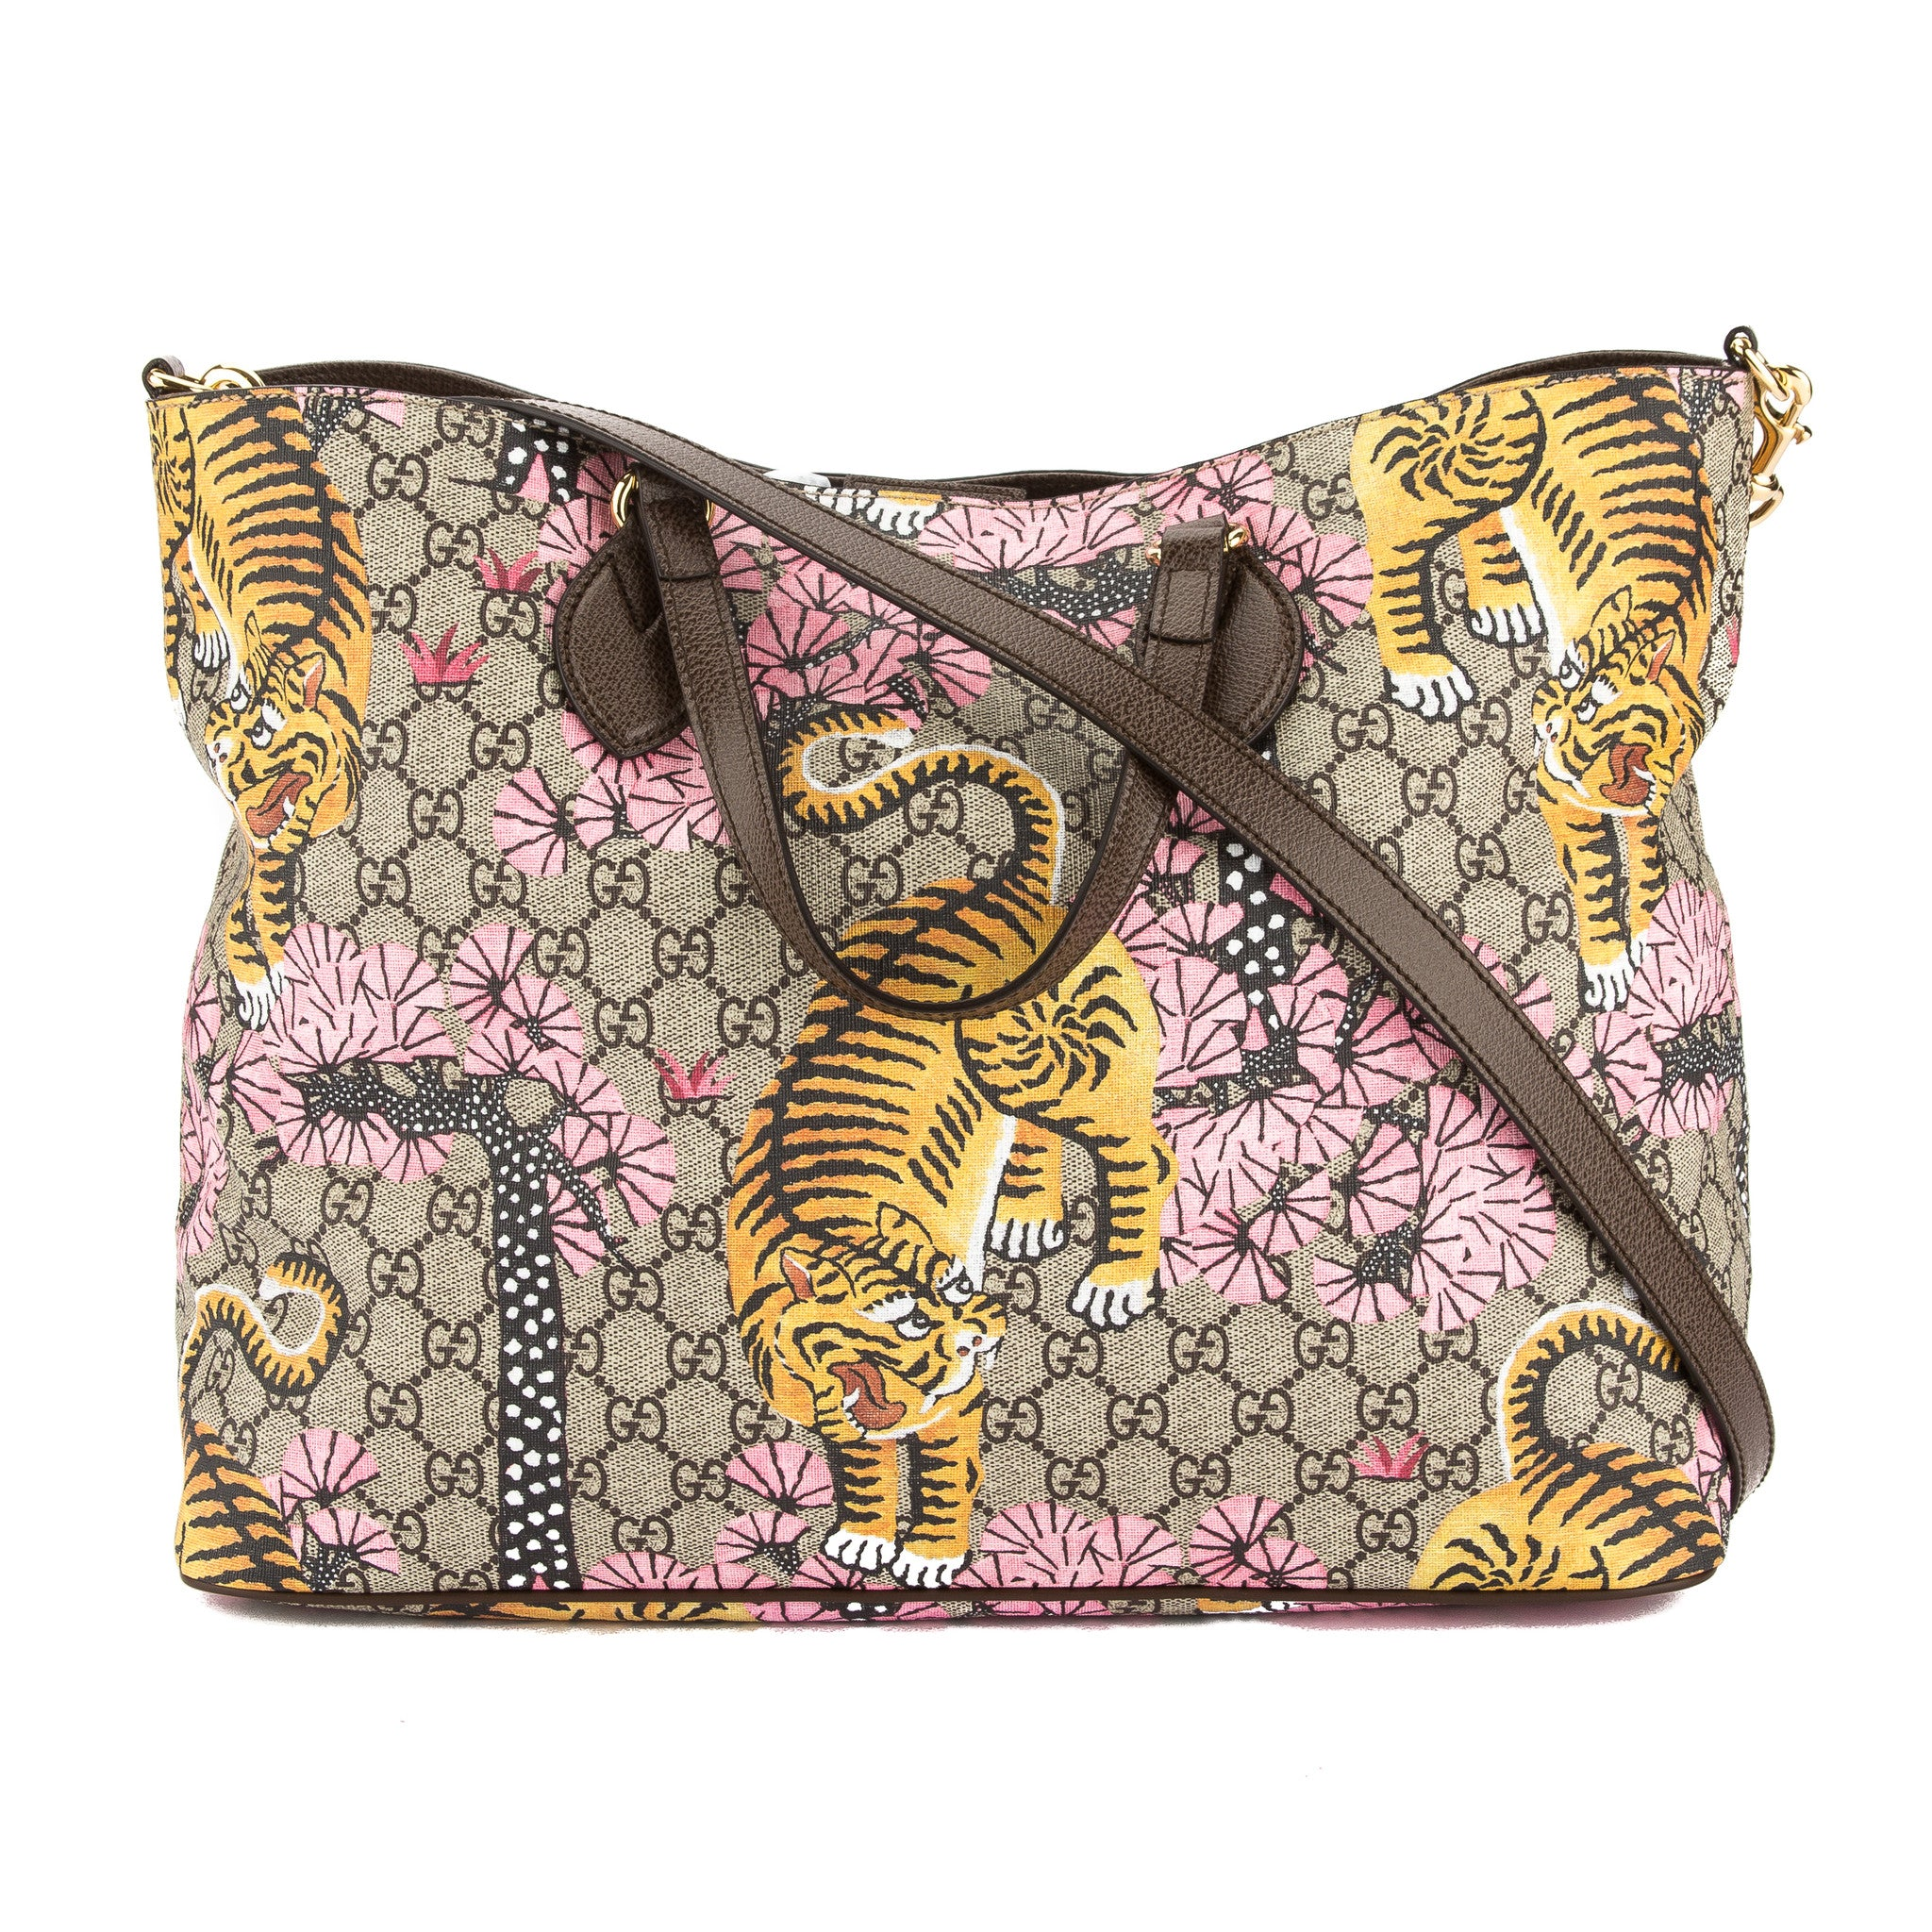 fdc627d1475 Gucci Soft GG Supreme Canvas Bengal Tote Bag (New with Tags ...